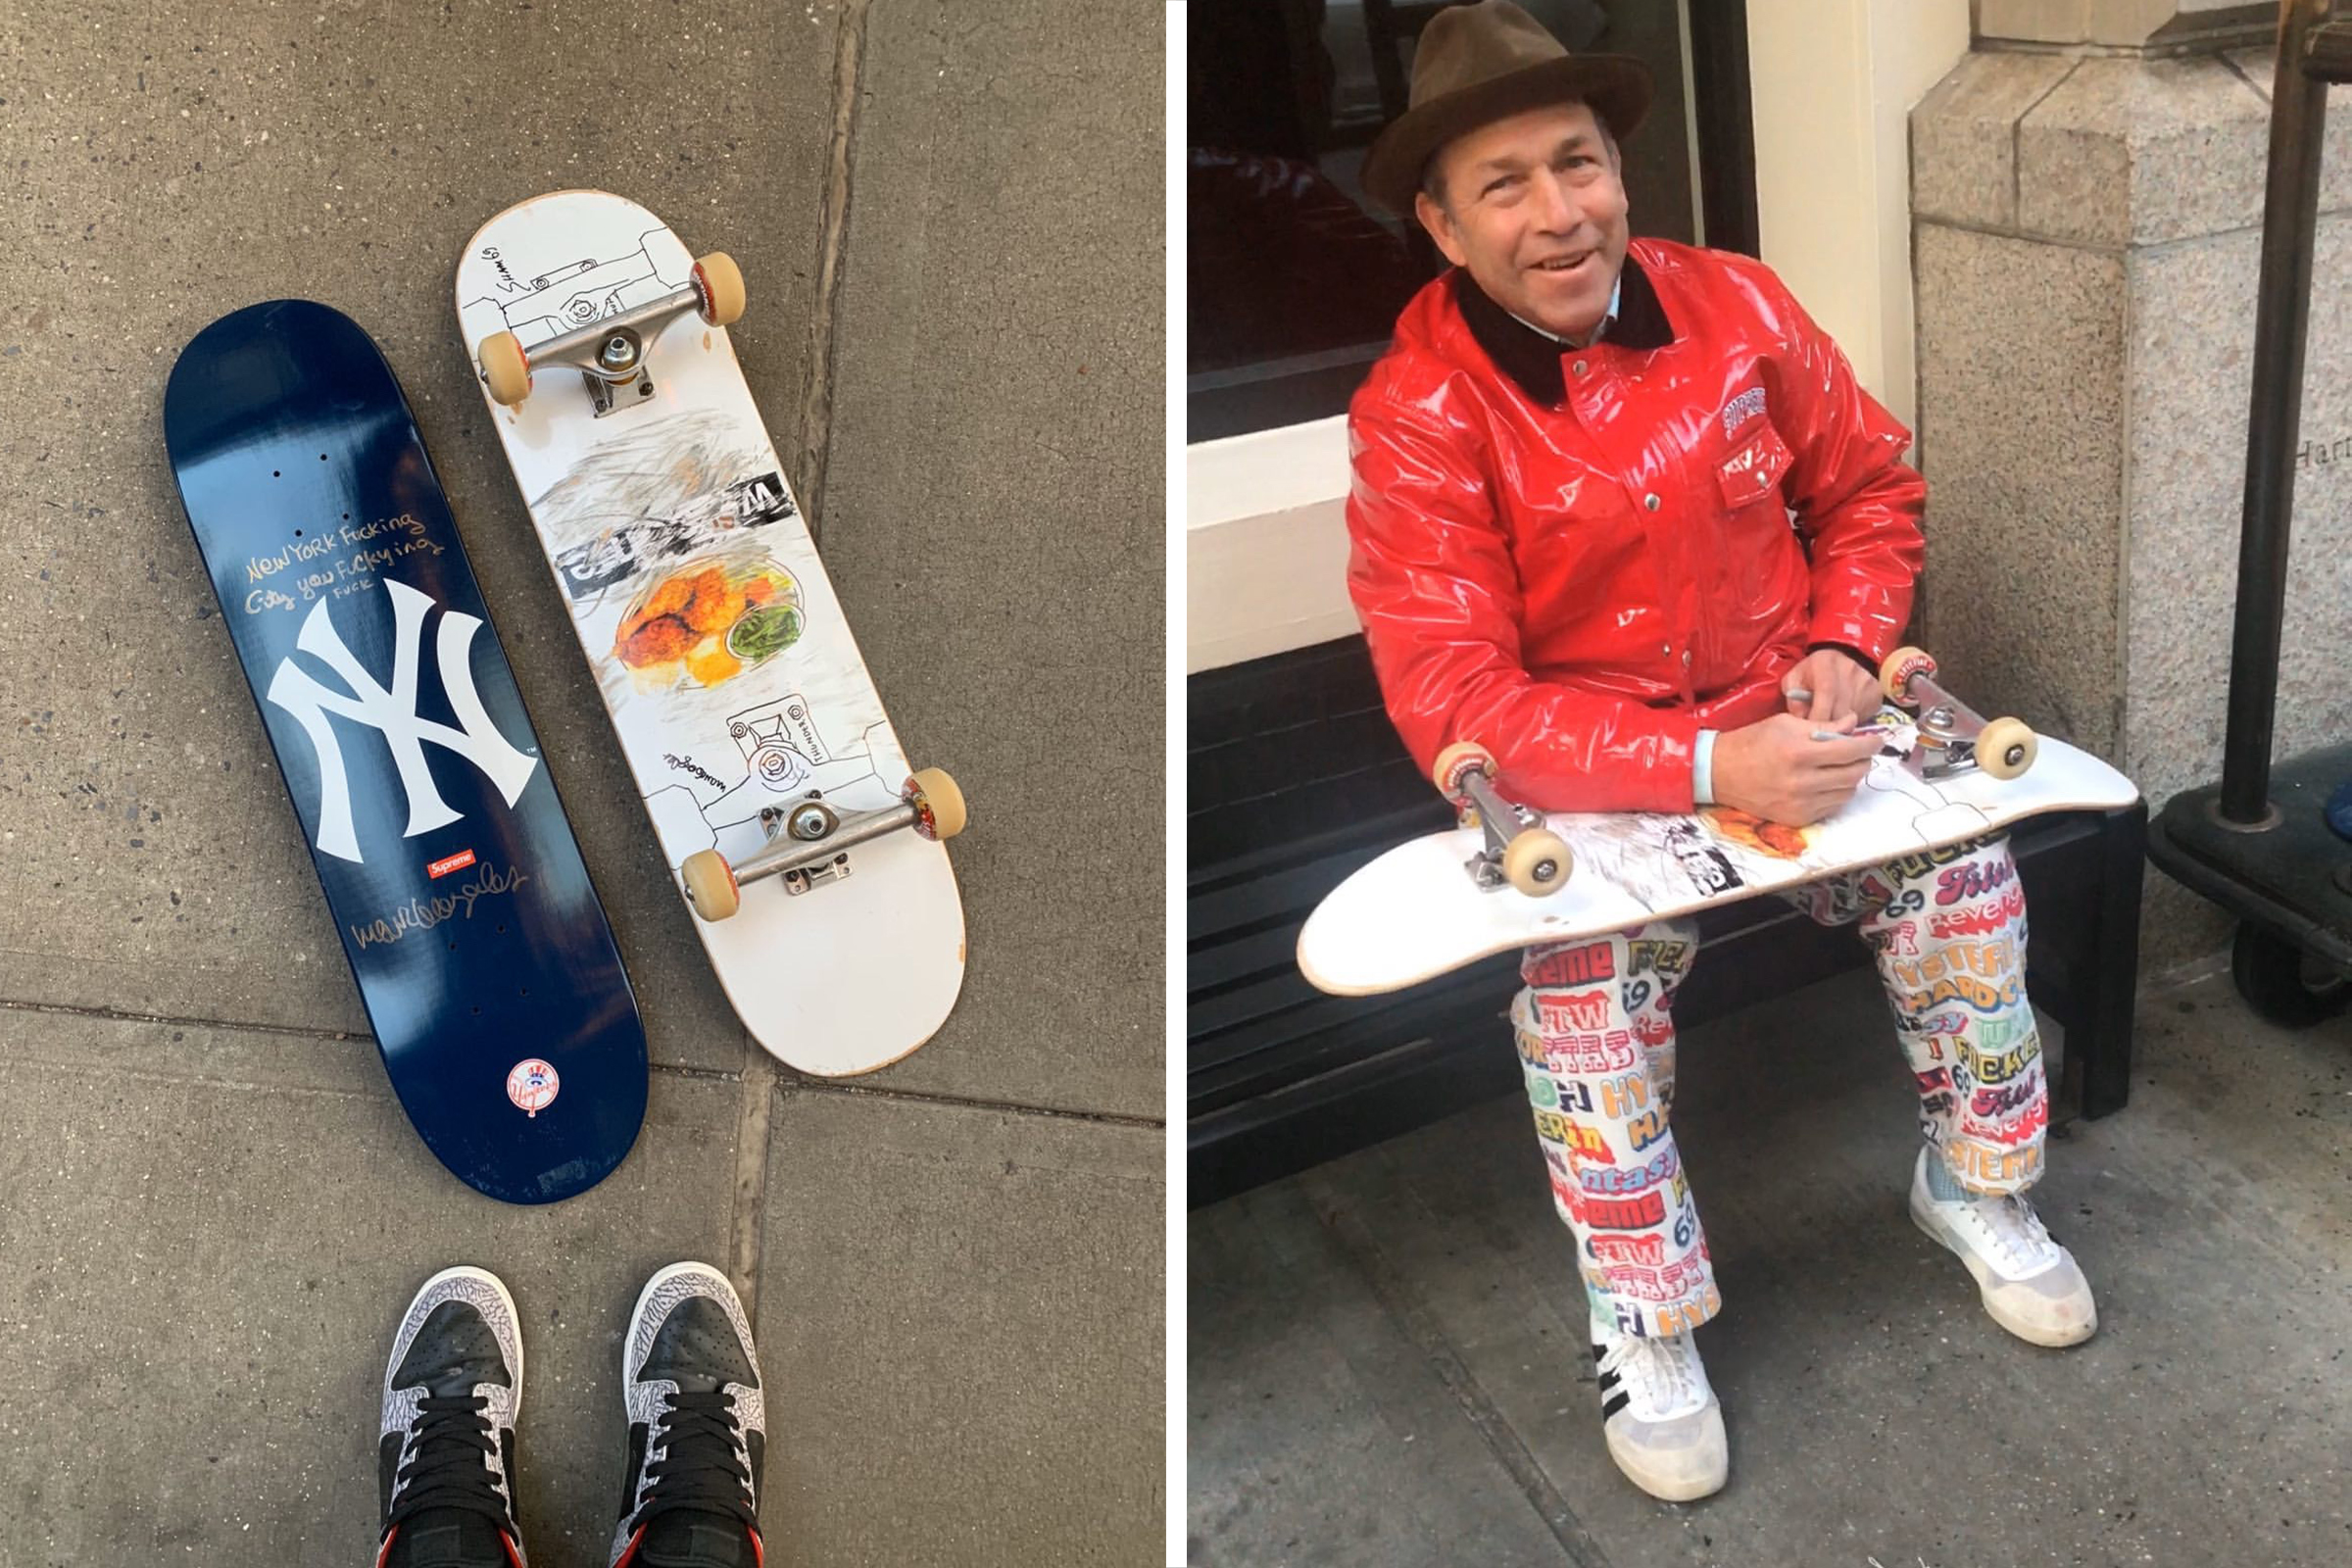 Supreme x New York Yankees skateboard - Signed by Mark Gonzales